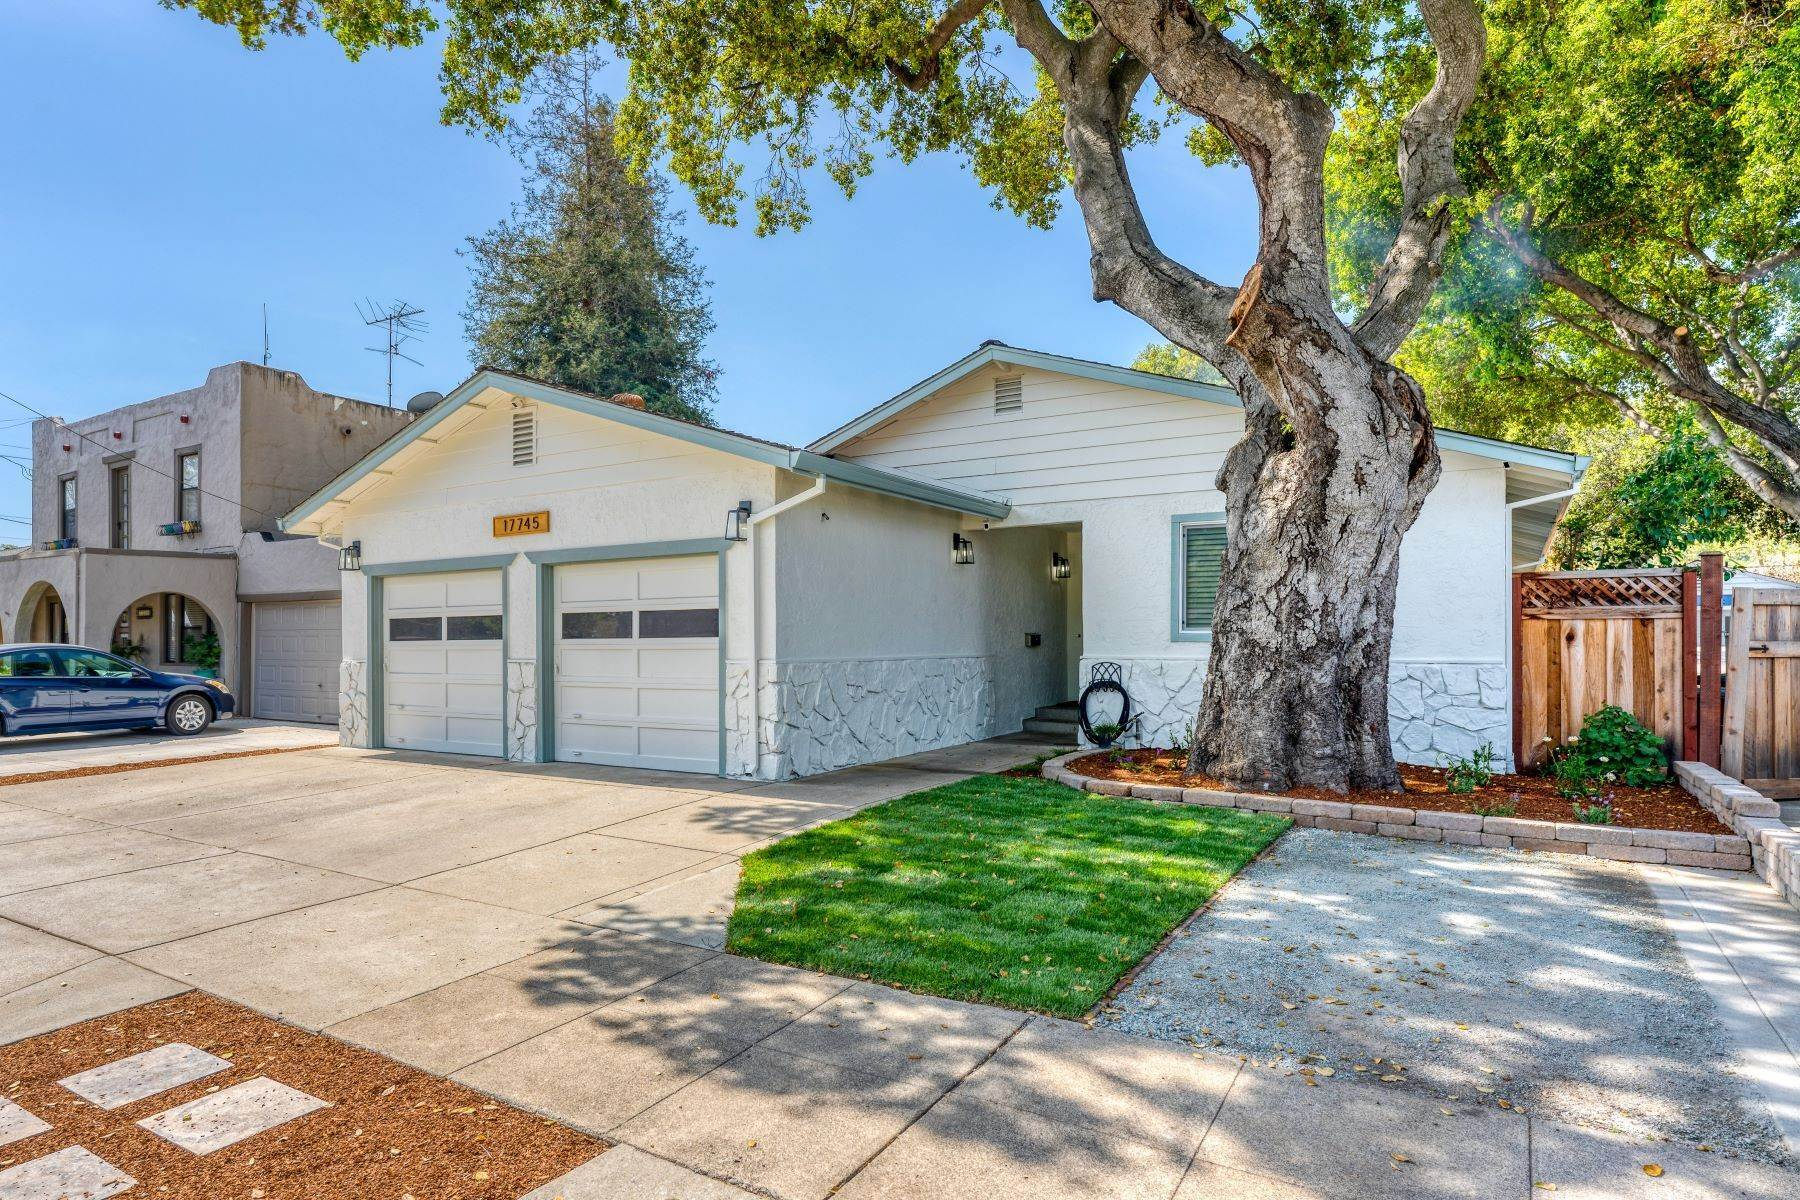 Single Family Homes for Active at 17745 Park, Morgan Hill, CA, 95037 17745 Park Morgan Hill, California 95037 United States